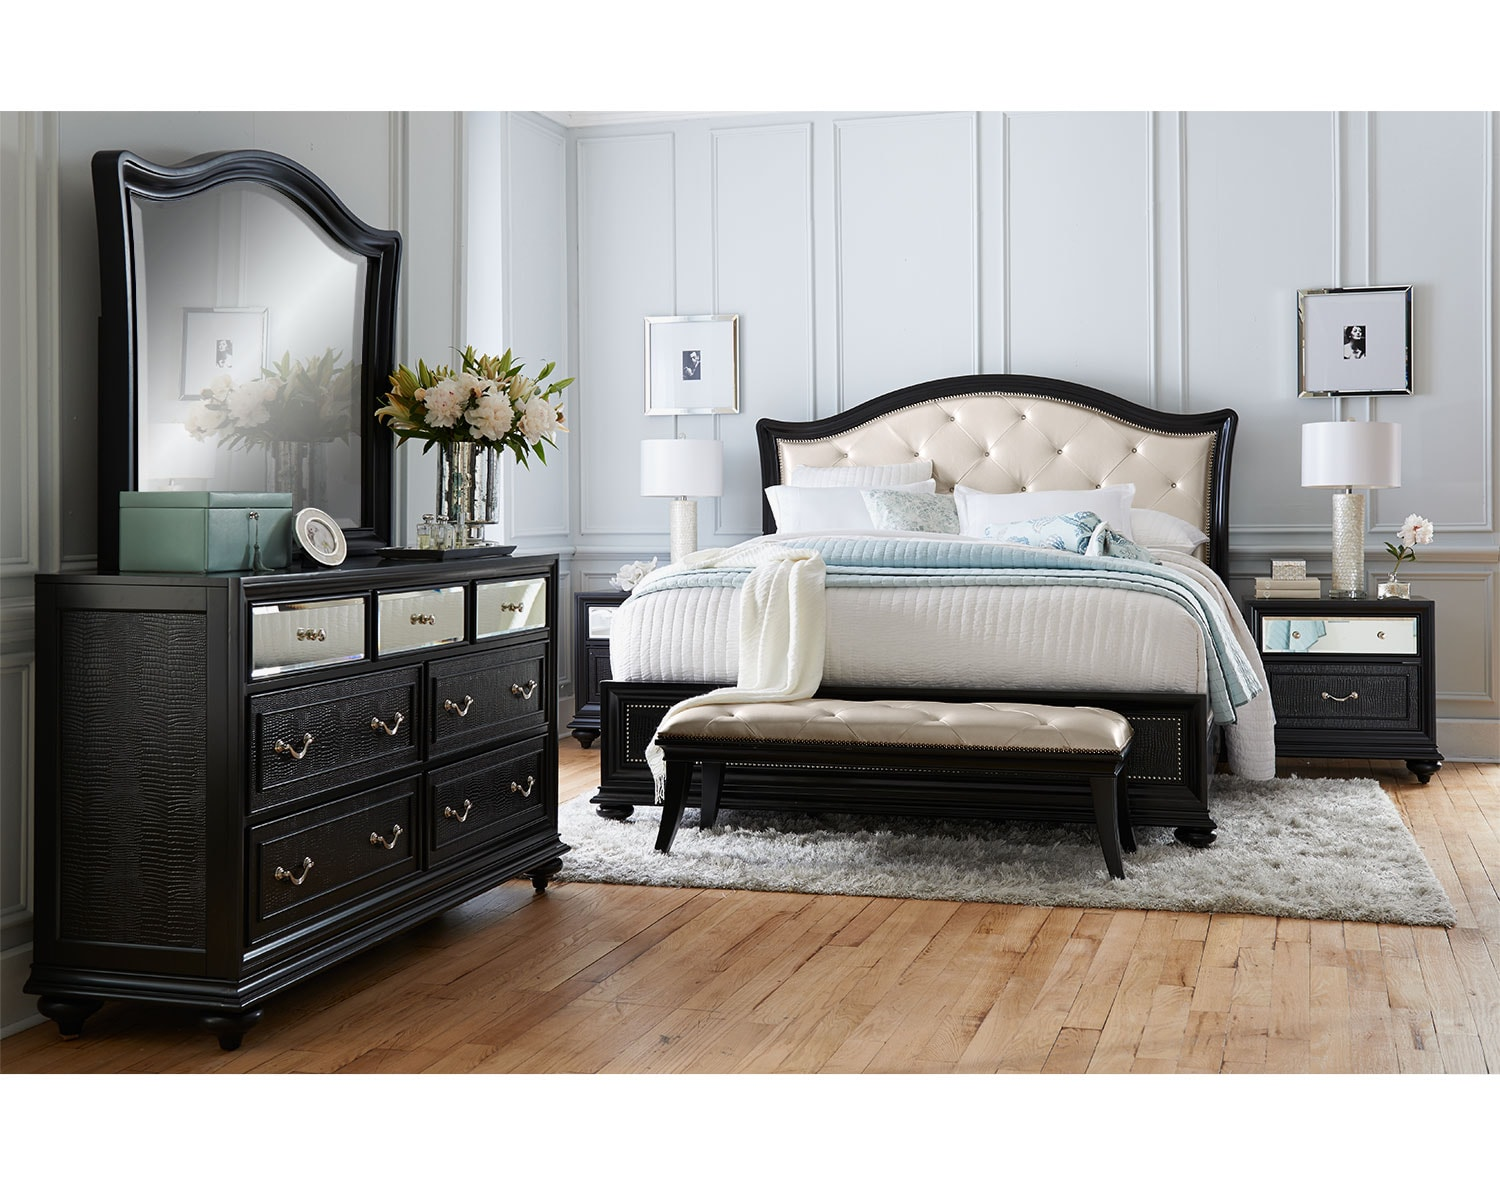 the marilyn collection ebony bedroom furniture brands